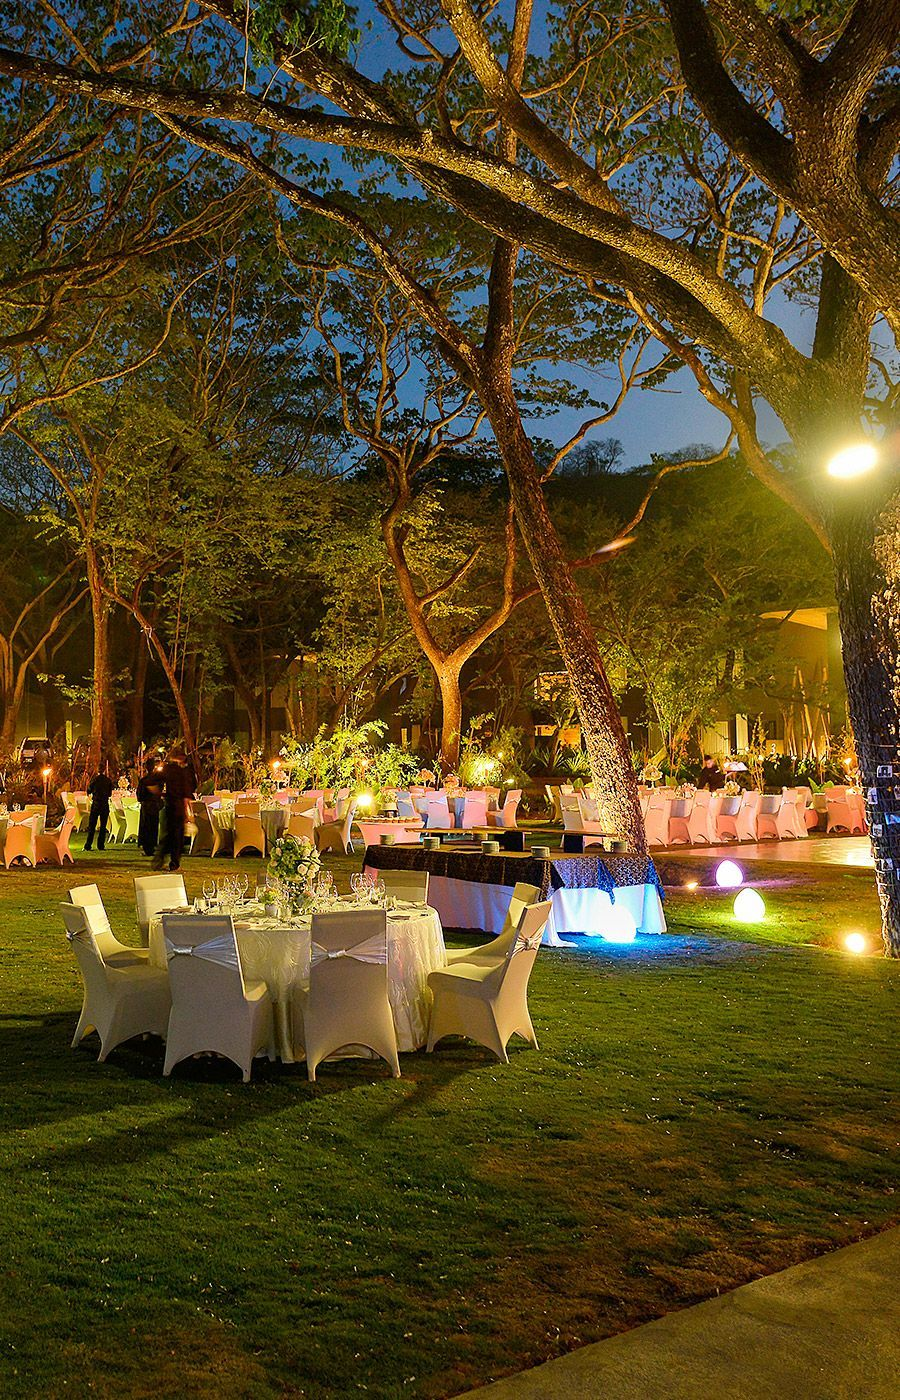 Garden wedding decorations night  Romantic wedding dinner setup surrounded by nature  Weddings